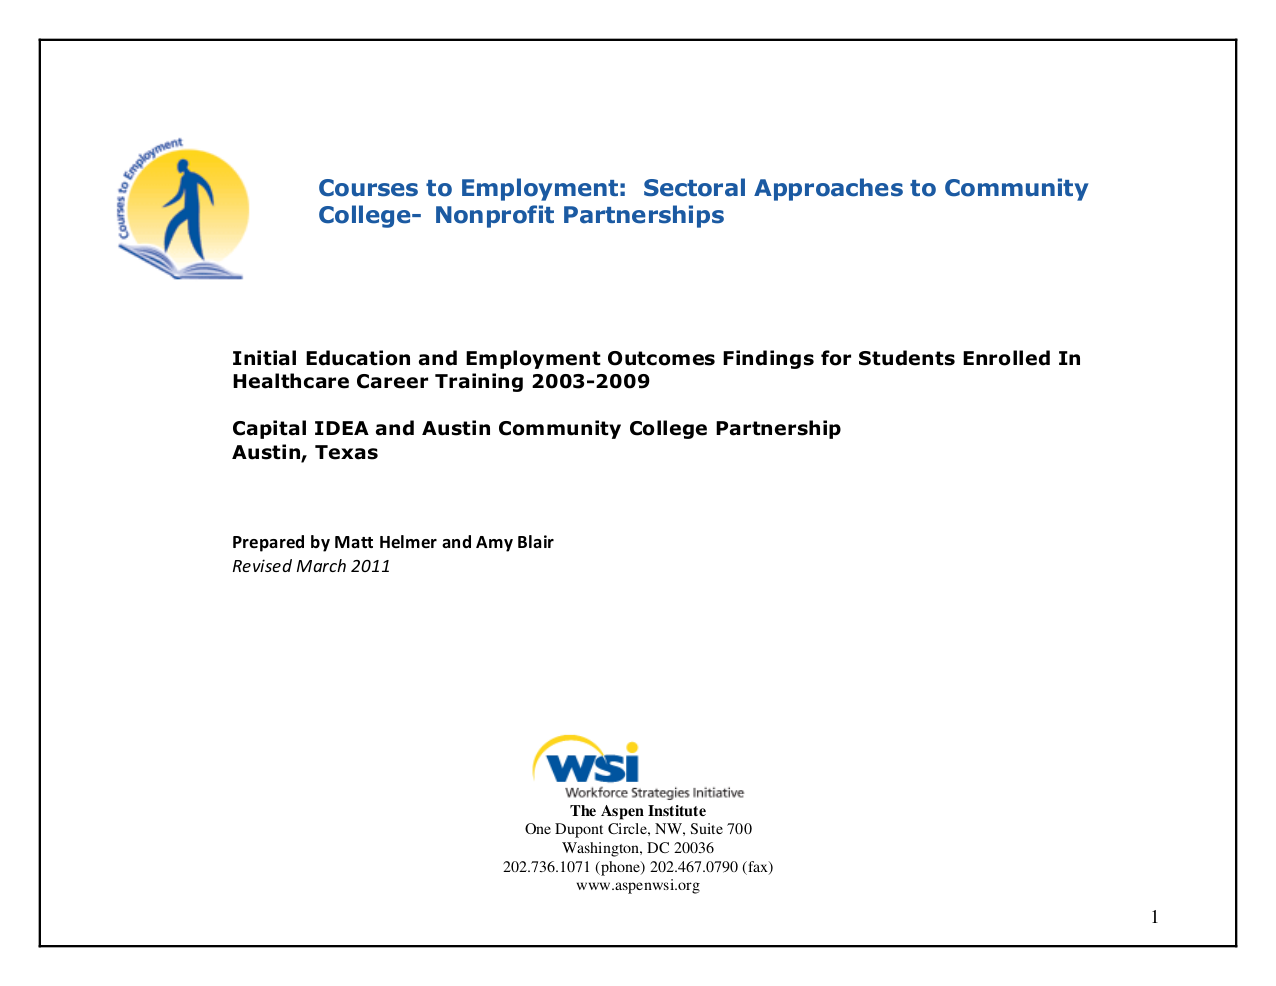 courses to employment: initial education and employment outcomes